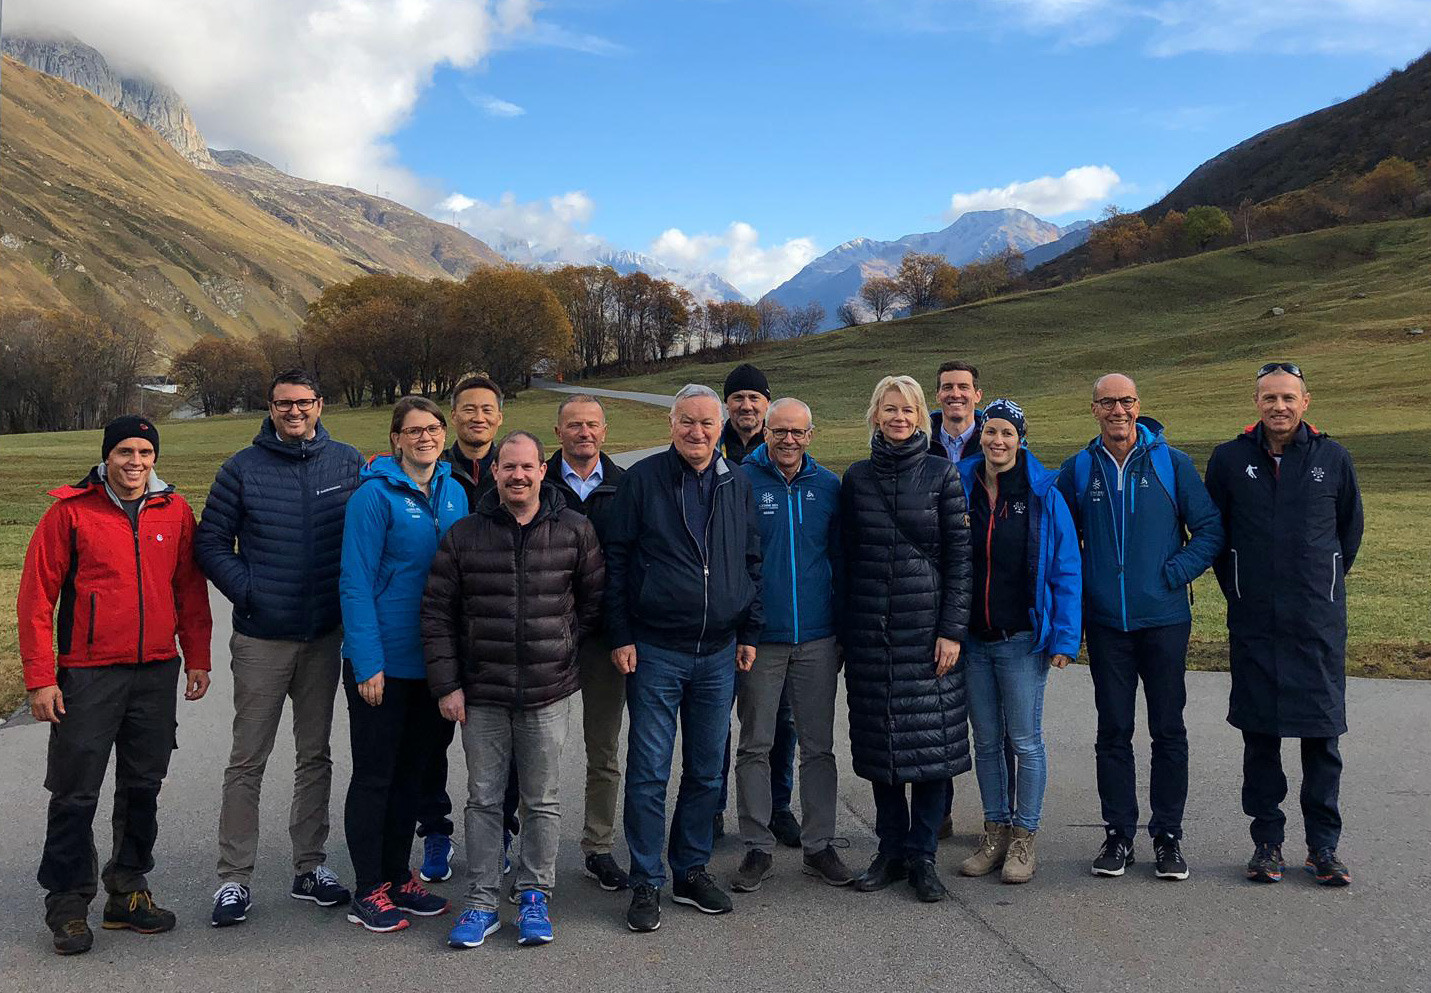 Winter Universiade Committee returns to Lucerne to assess 2021 preparations